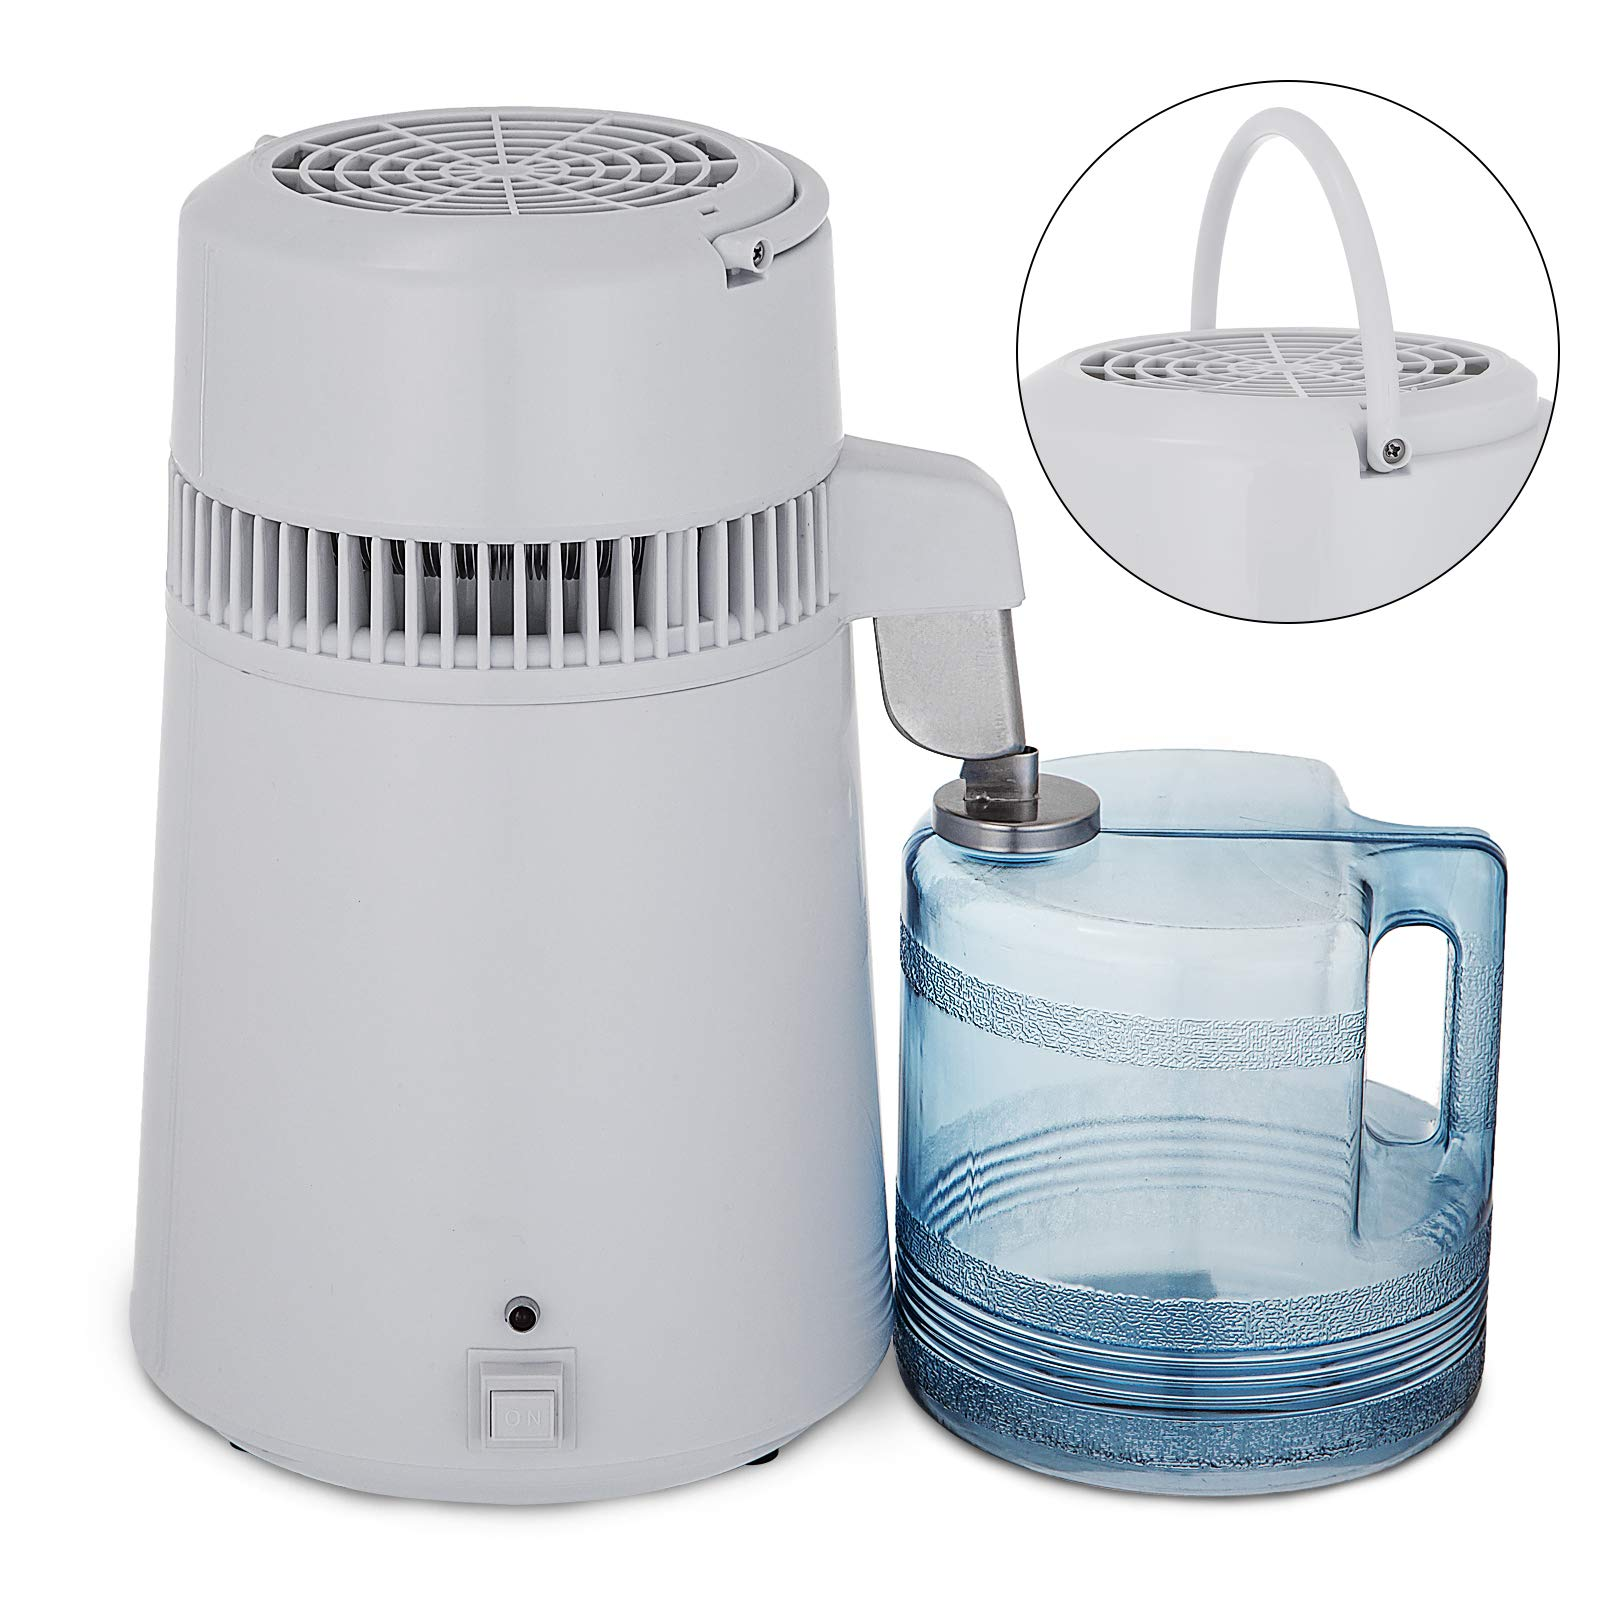 Vevor Countertop Water Distiller 750W Purifier Filter with Handle 1.1 Gal 4L BPA Free Container Perfect for Home Use, White by Vevor